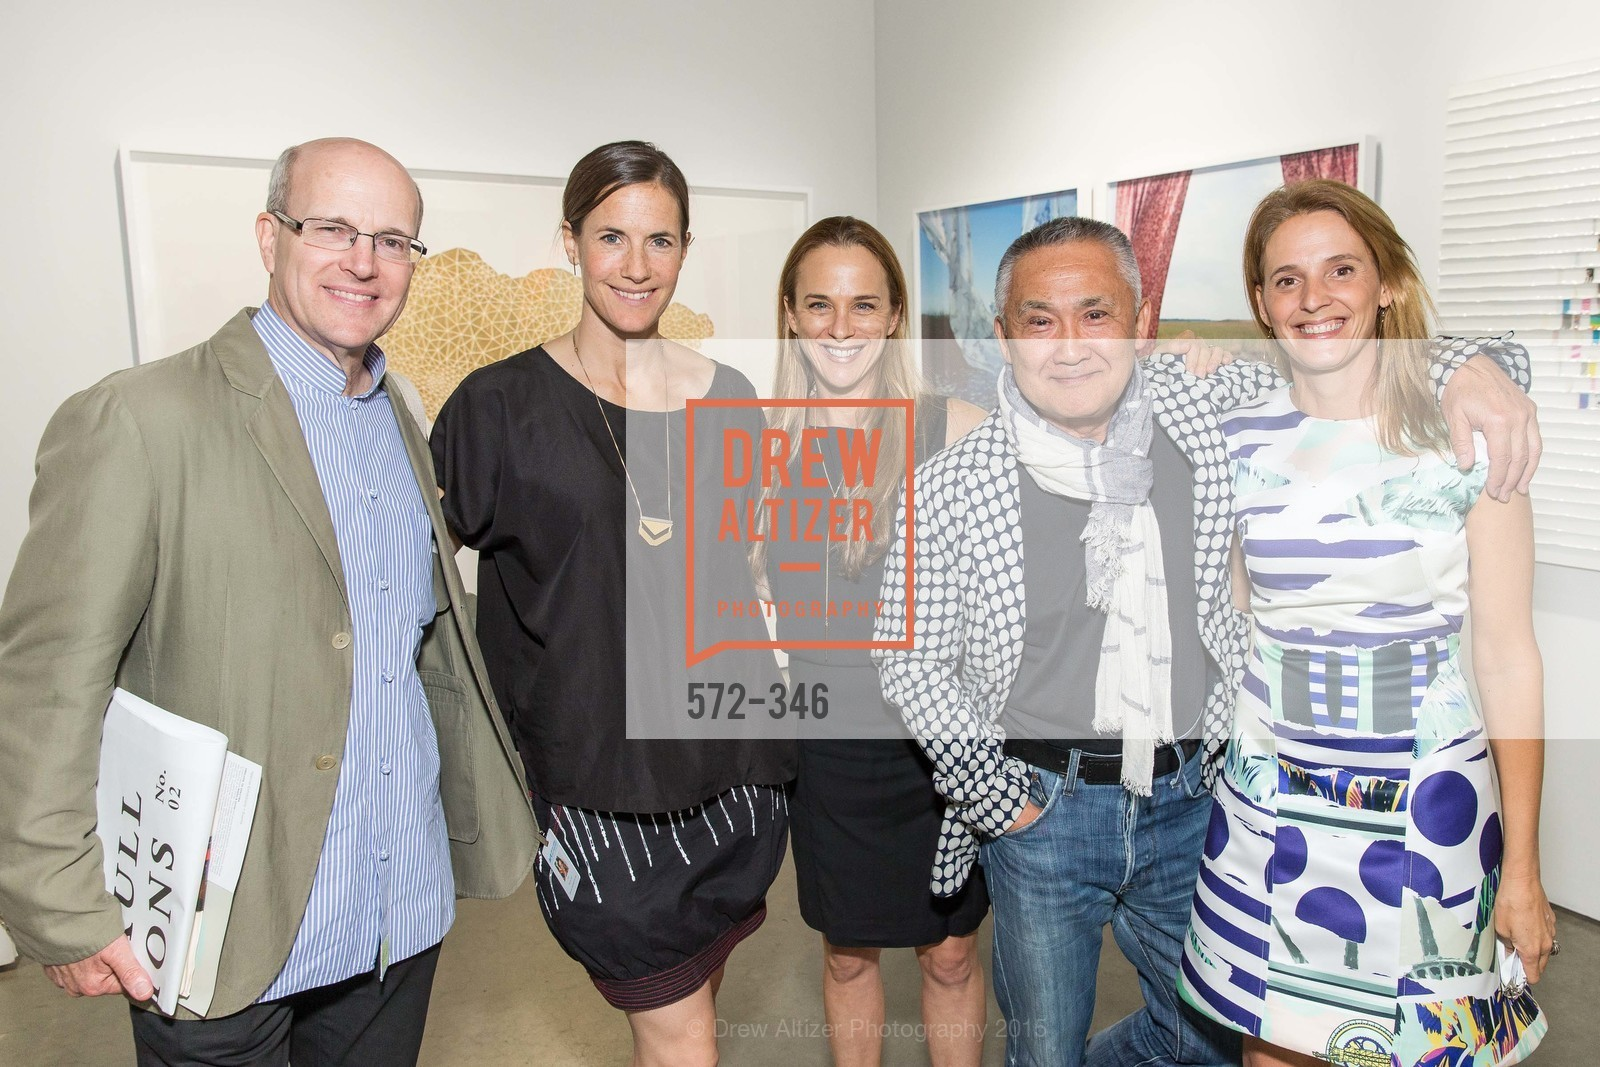 Mark Wolcott, Svea Soll, Stephanie Breitbard, Koichi Hara, Evie Simon, Art Miami Presents: Art Silicon Valley, San Mateo County Event Center. 1346 Saratoga Dr, October 8th, 2015,Drew Altizer, Drew Altizer Photography, full-service event agency, private events, San Francisco photographer, photographer California